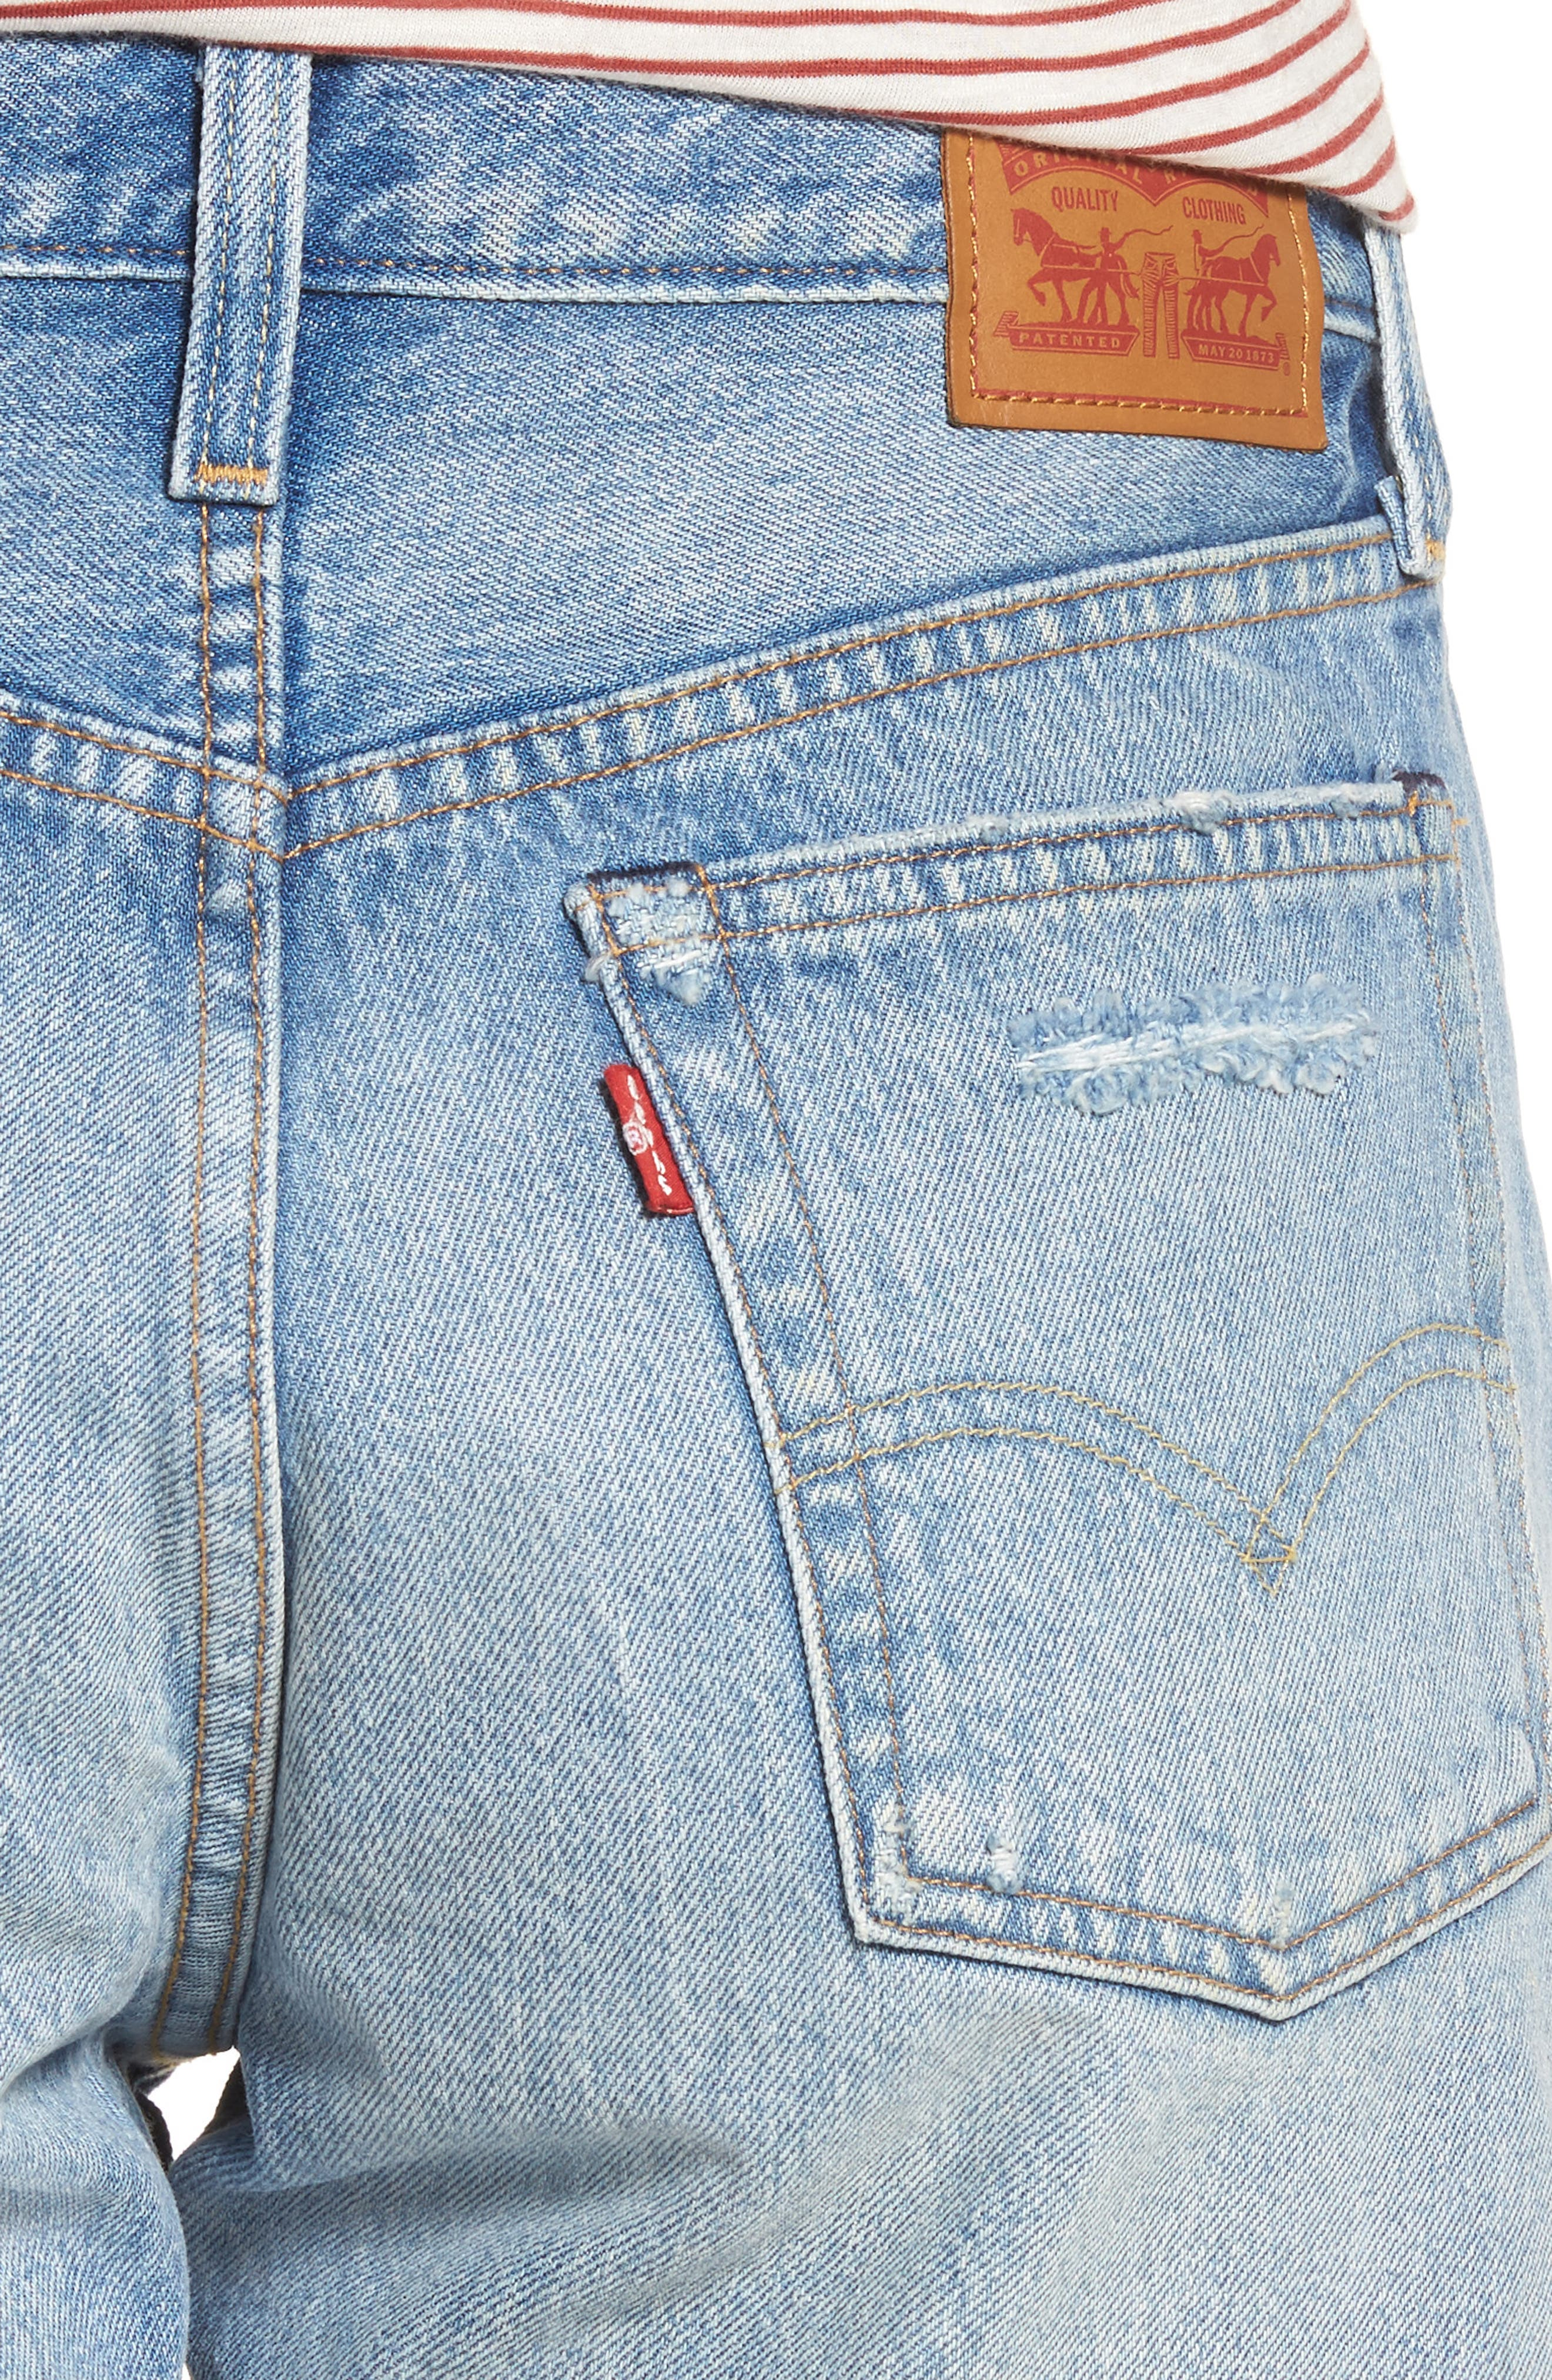 Indie Shredded Cutoff Denim Shorts,                             Alternate thumbnail 4, color,                             Let It Rip